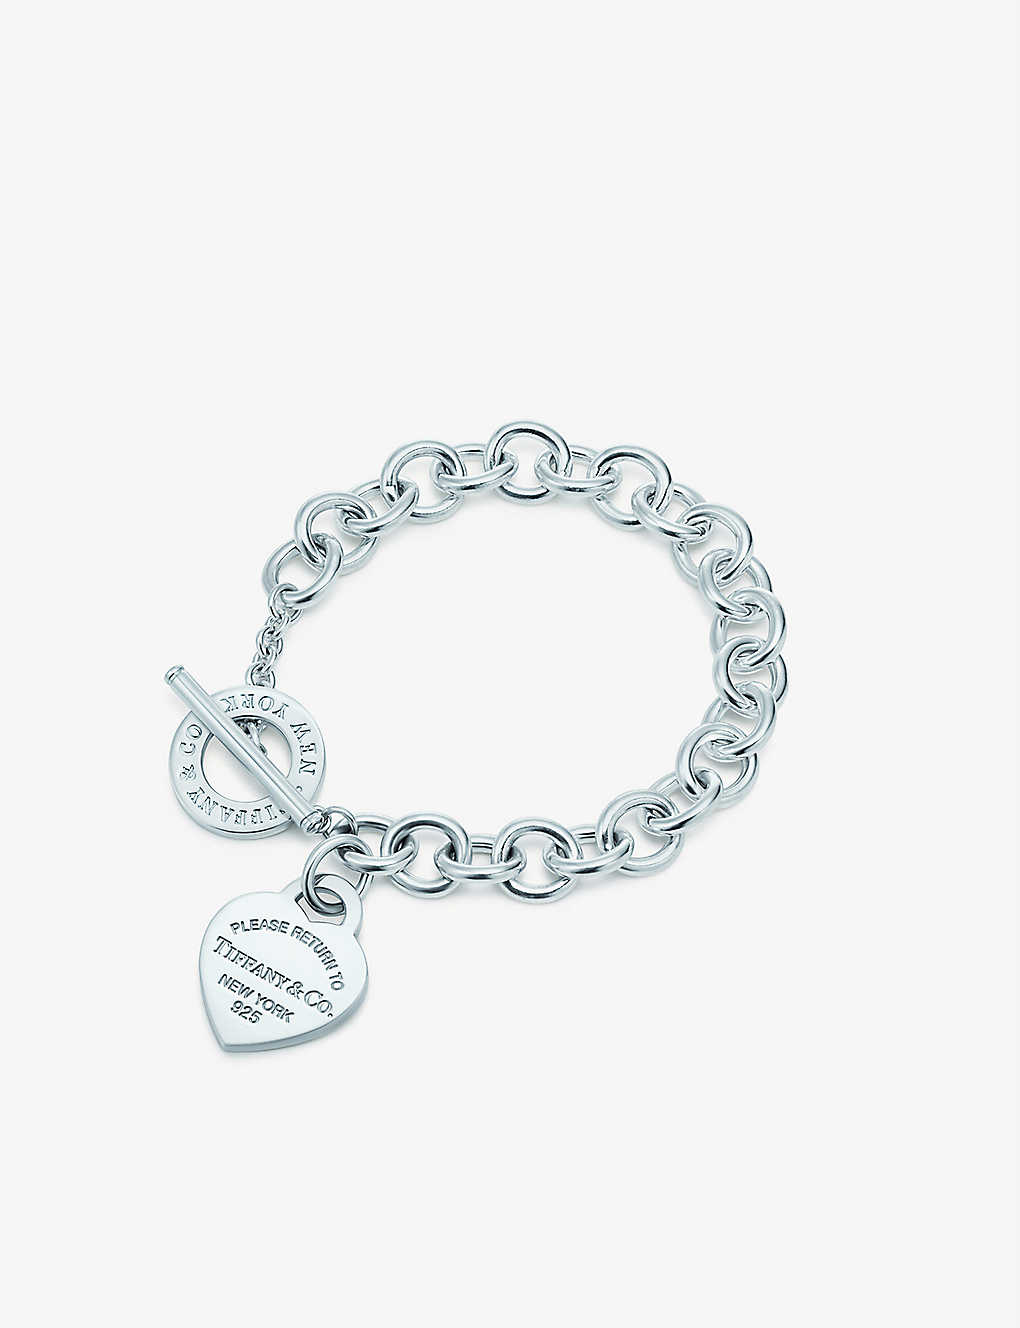 95ccd8085 TIFFANY & CO - Return to Tiffany sterling-silver bracelet ...